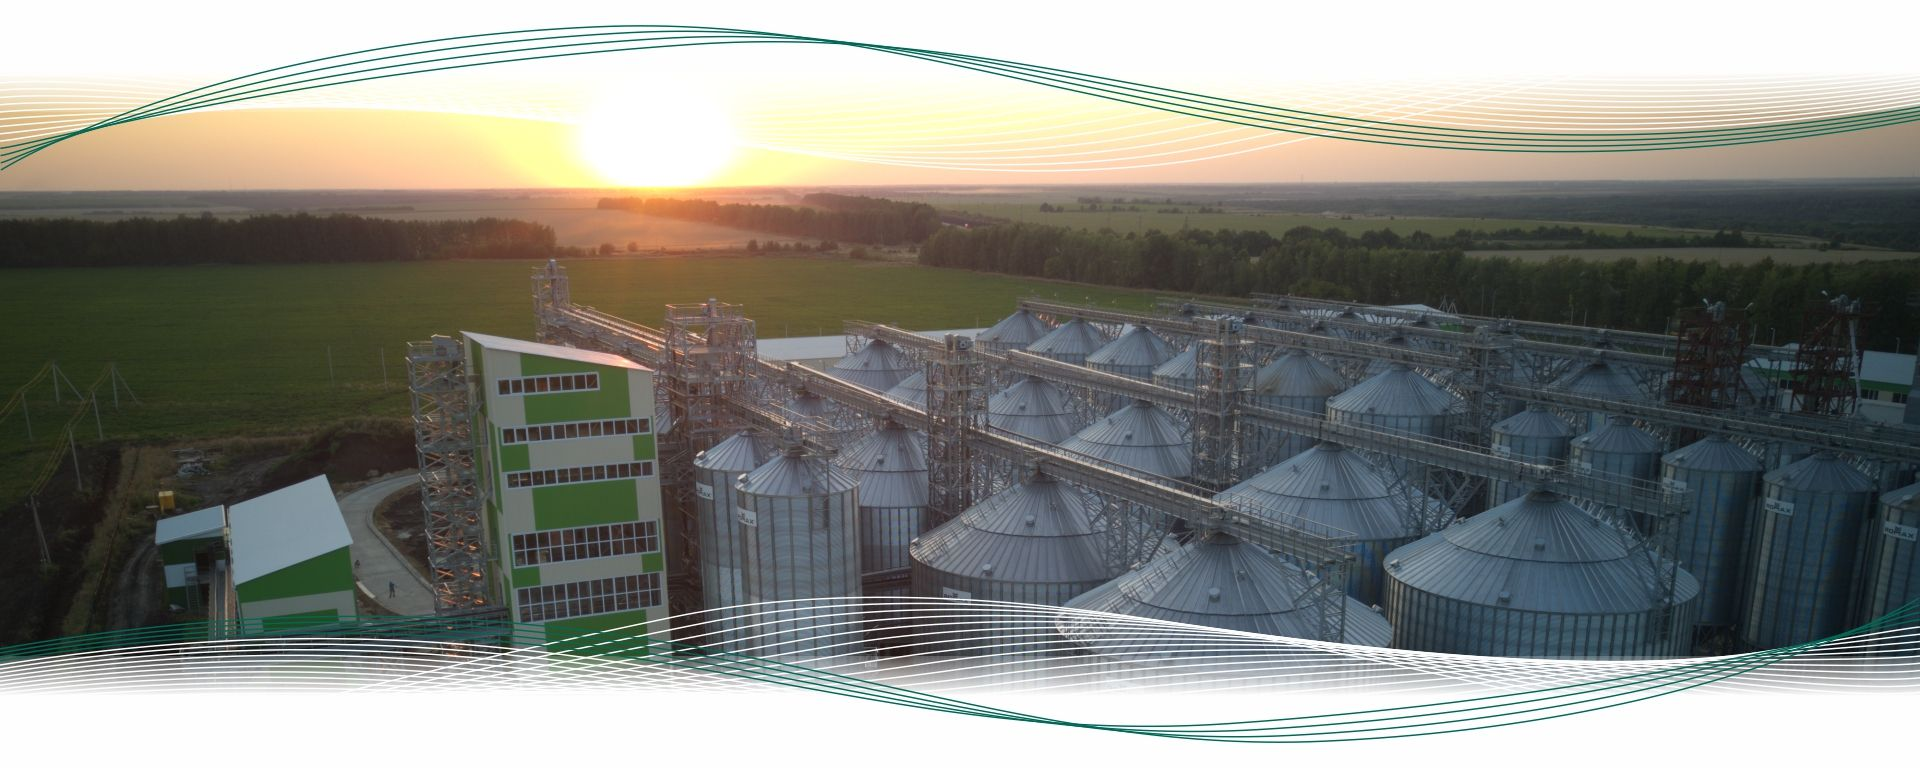 ROMAX. Equipment manufacturing for grain processing complexes